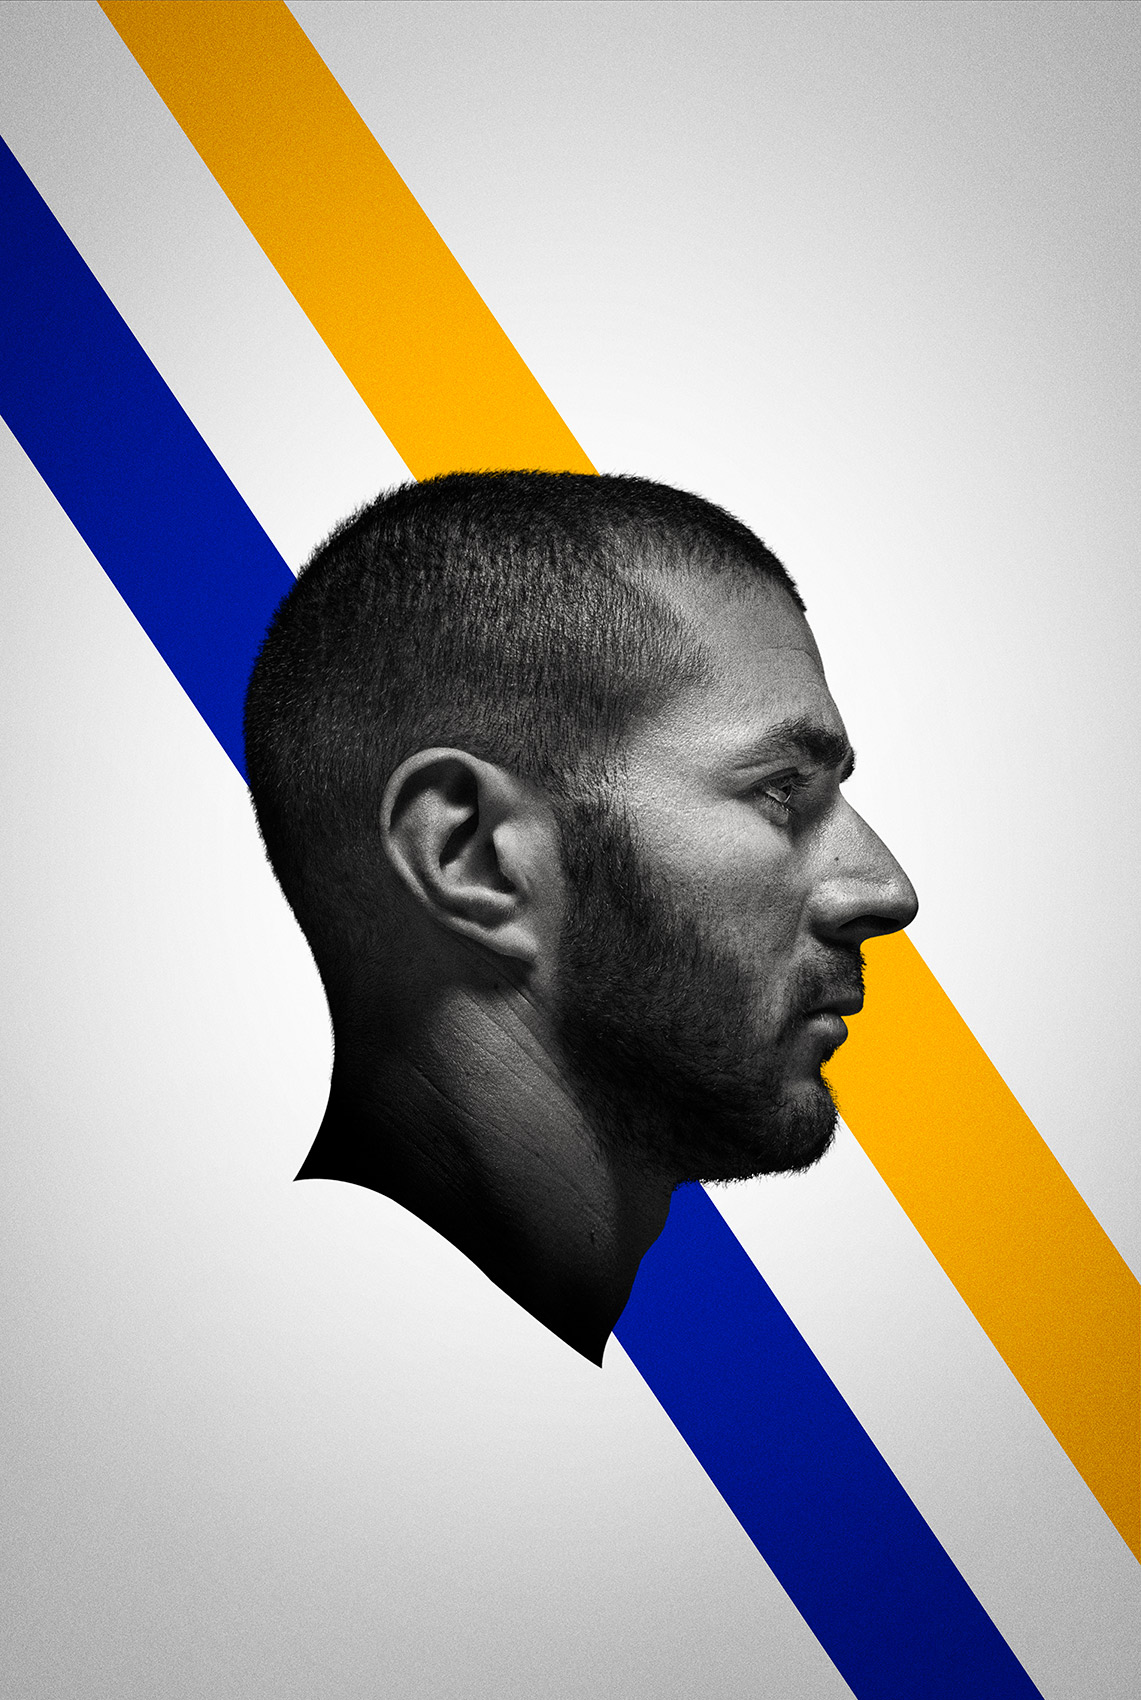 Adidas - Sport Icon Karim Benzema / Agency: Fiction